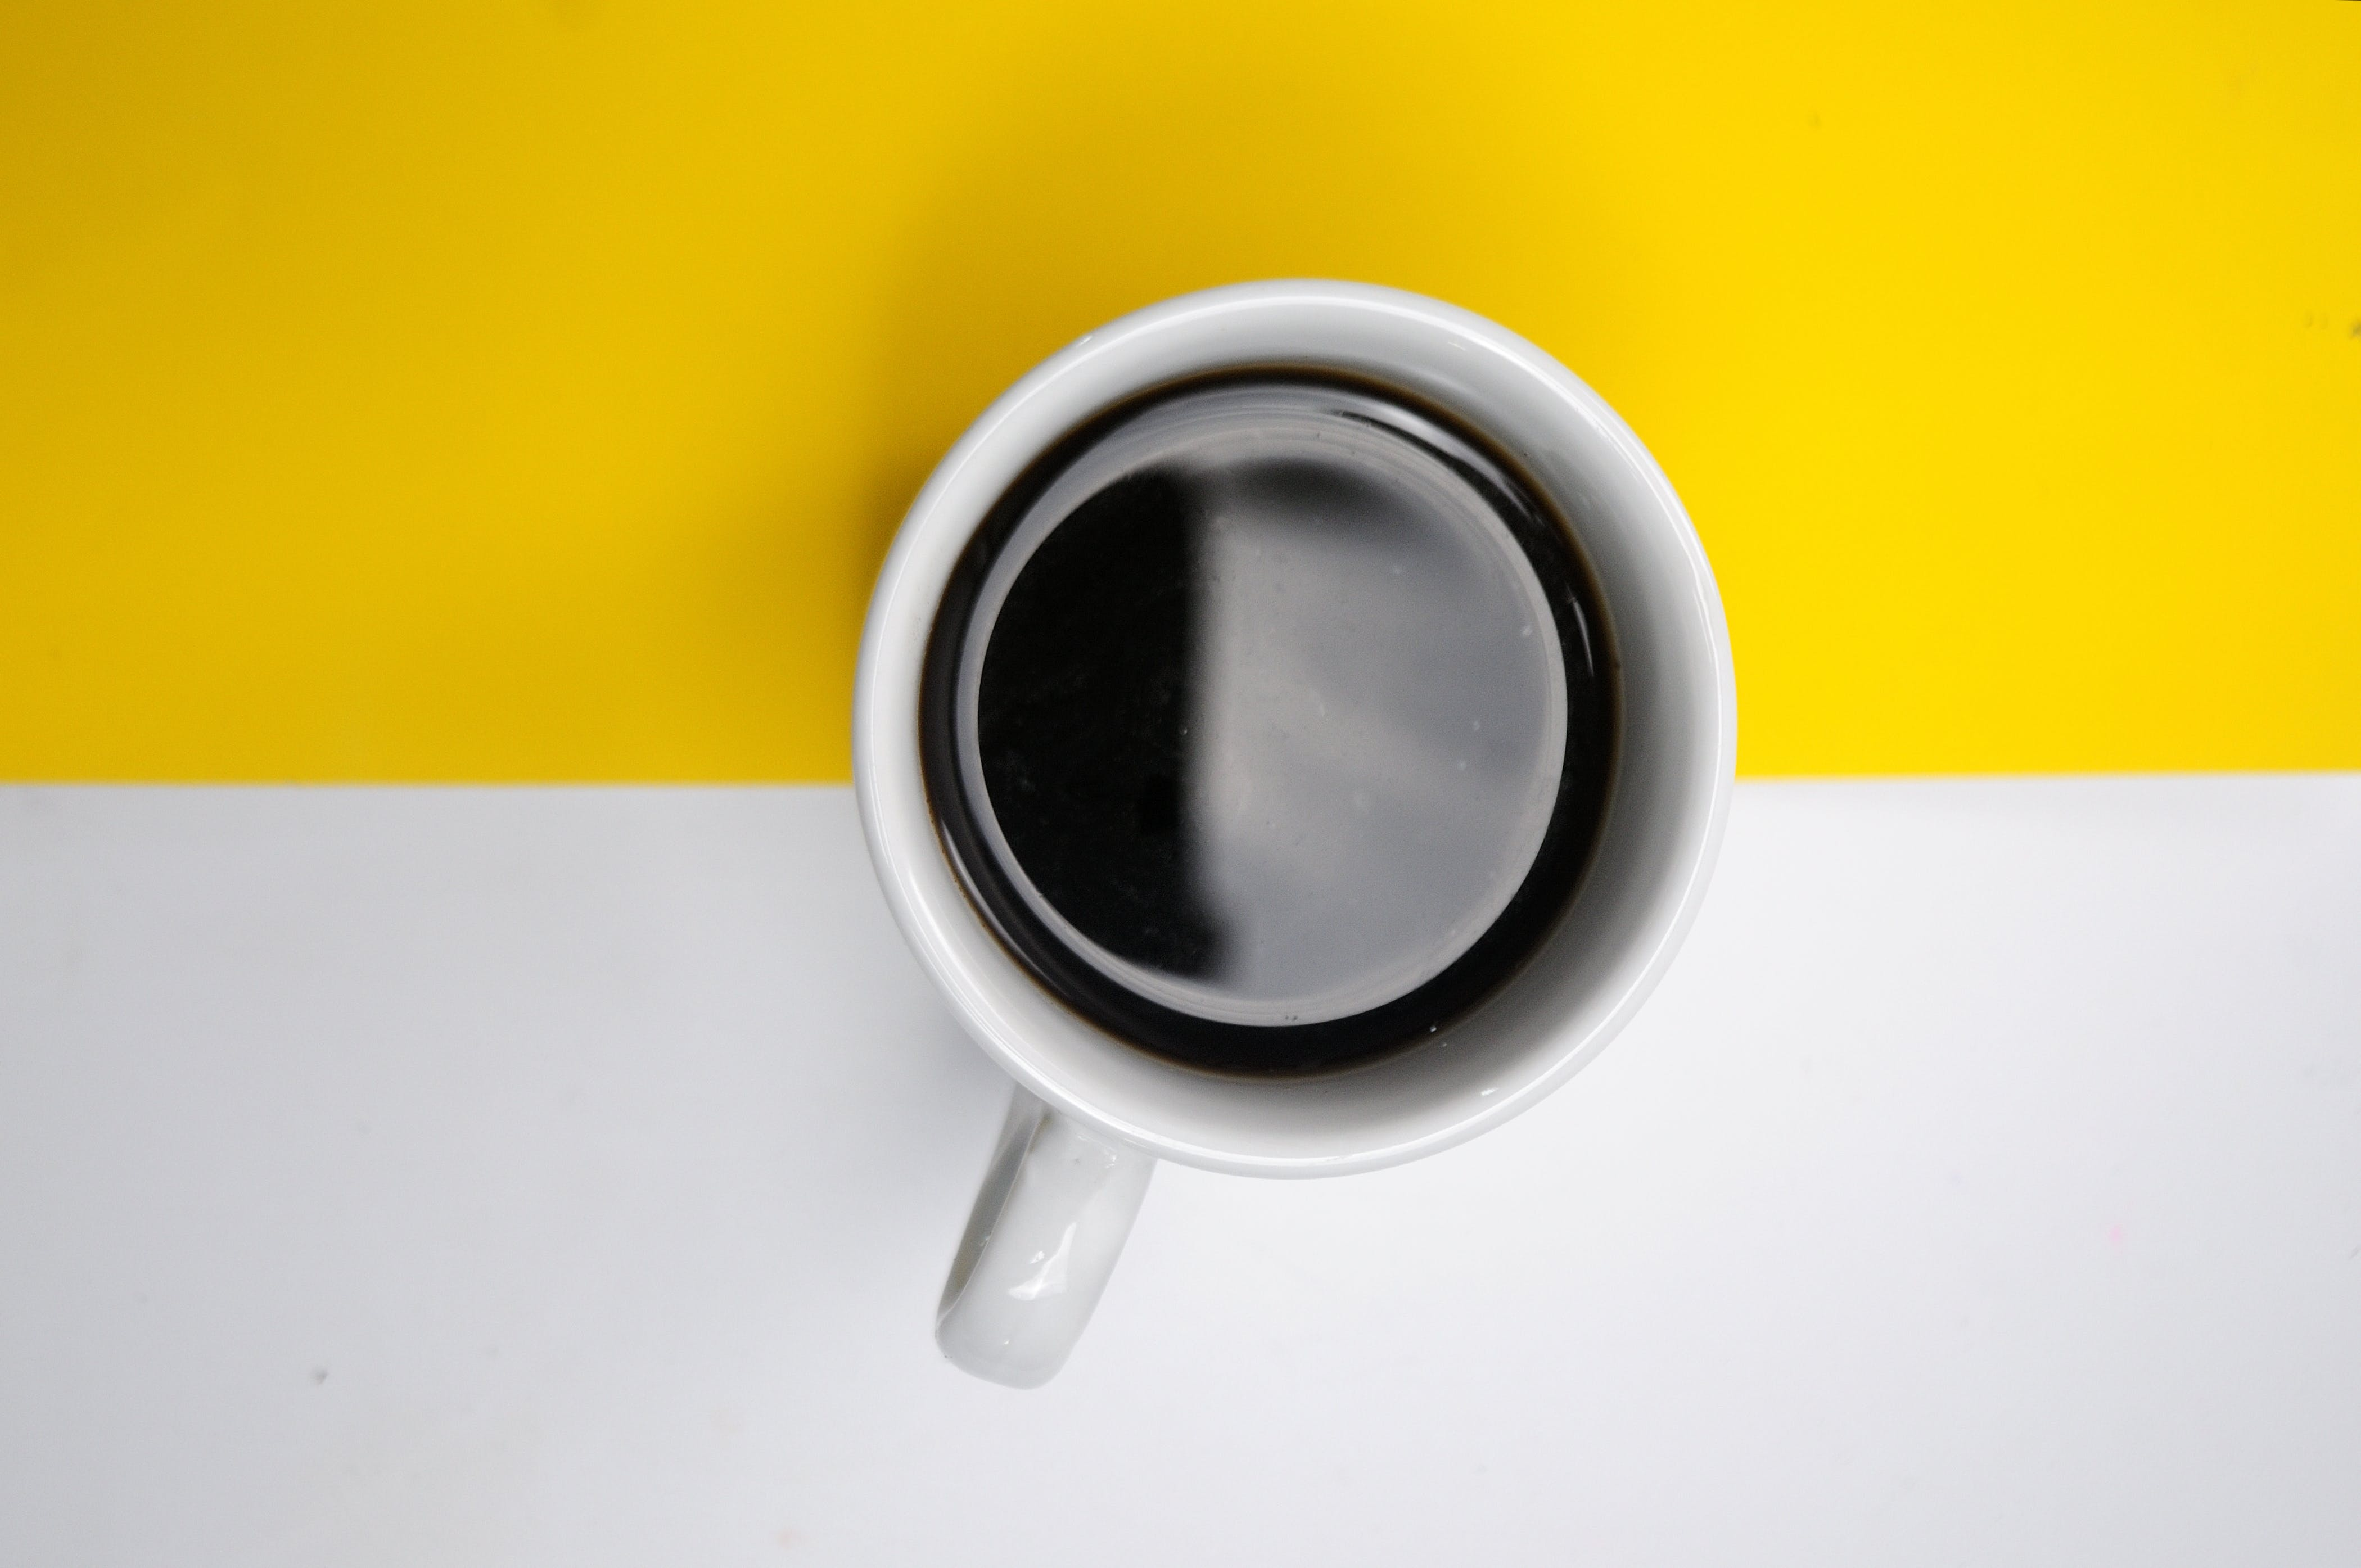 Free stock photo of coffee cup, cup, cup of coffee